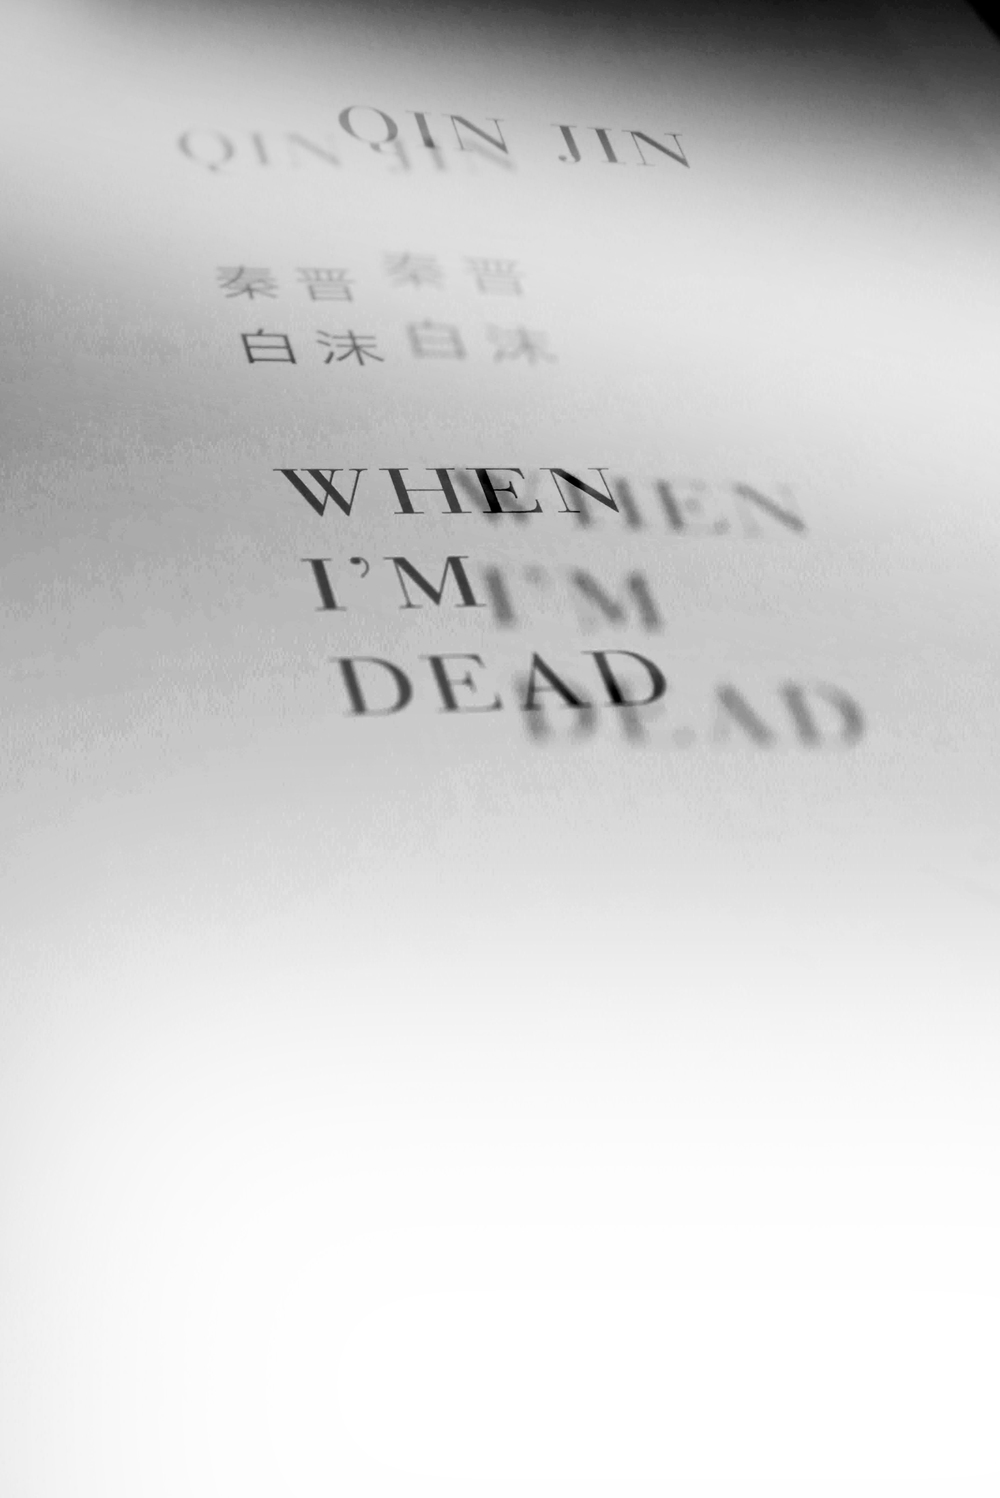 qin jin when i'm dead art book photography by floriana castagna | S/TUDIO